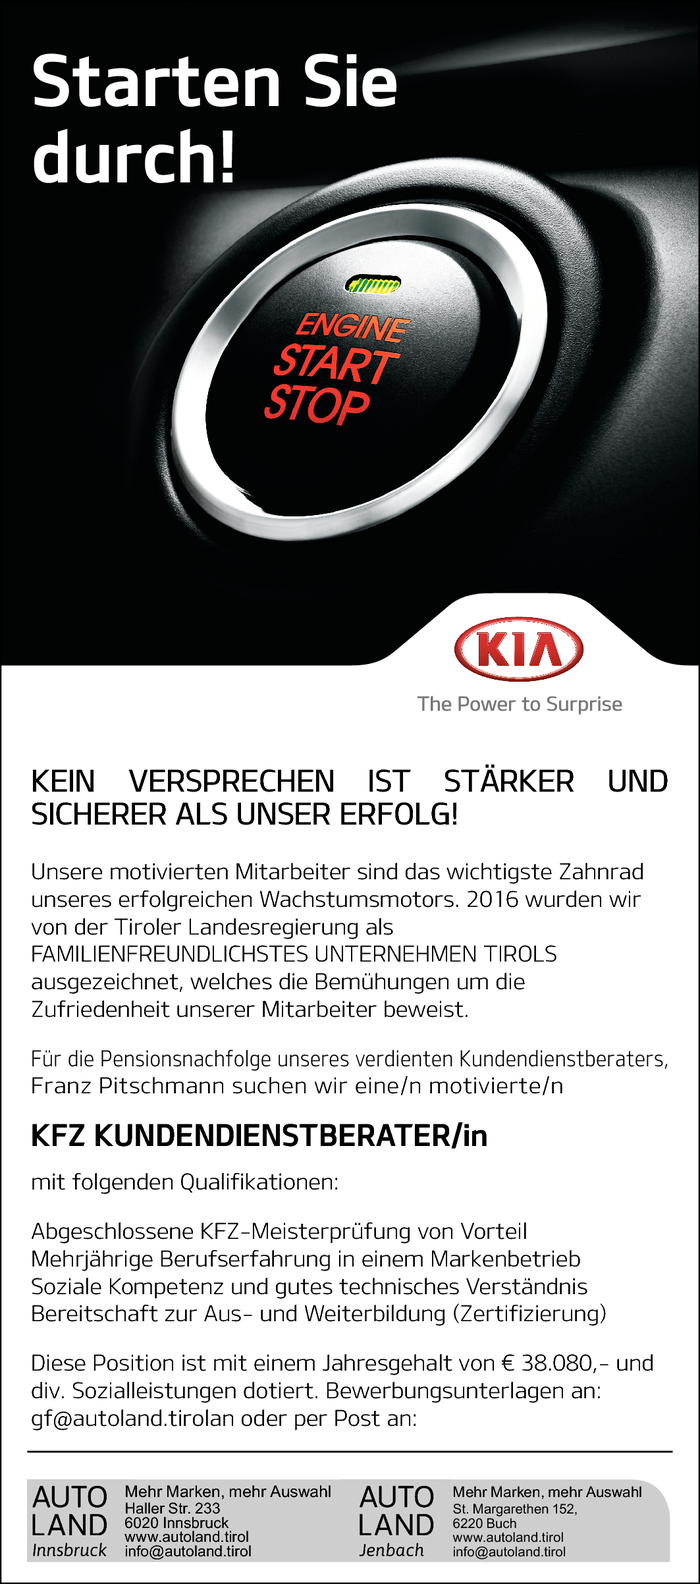 KFZ Kundendienstberater/in